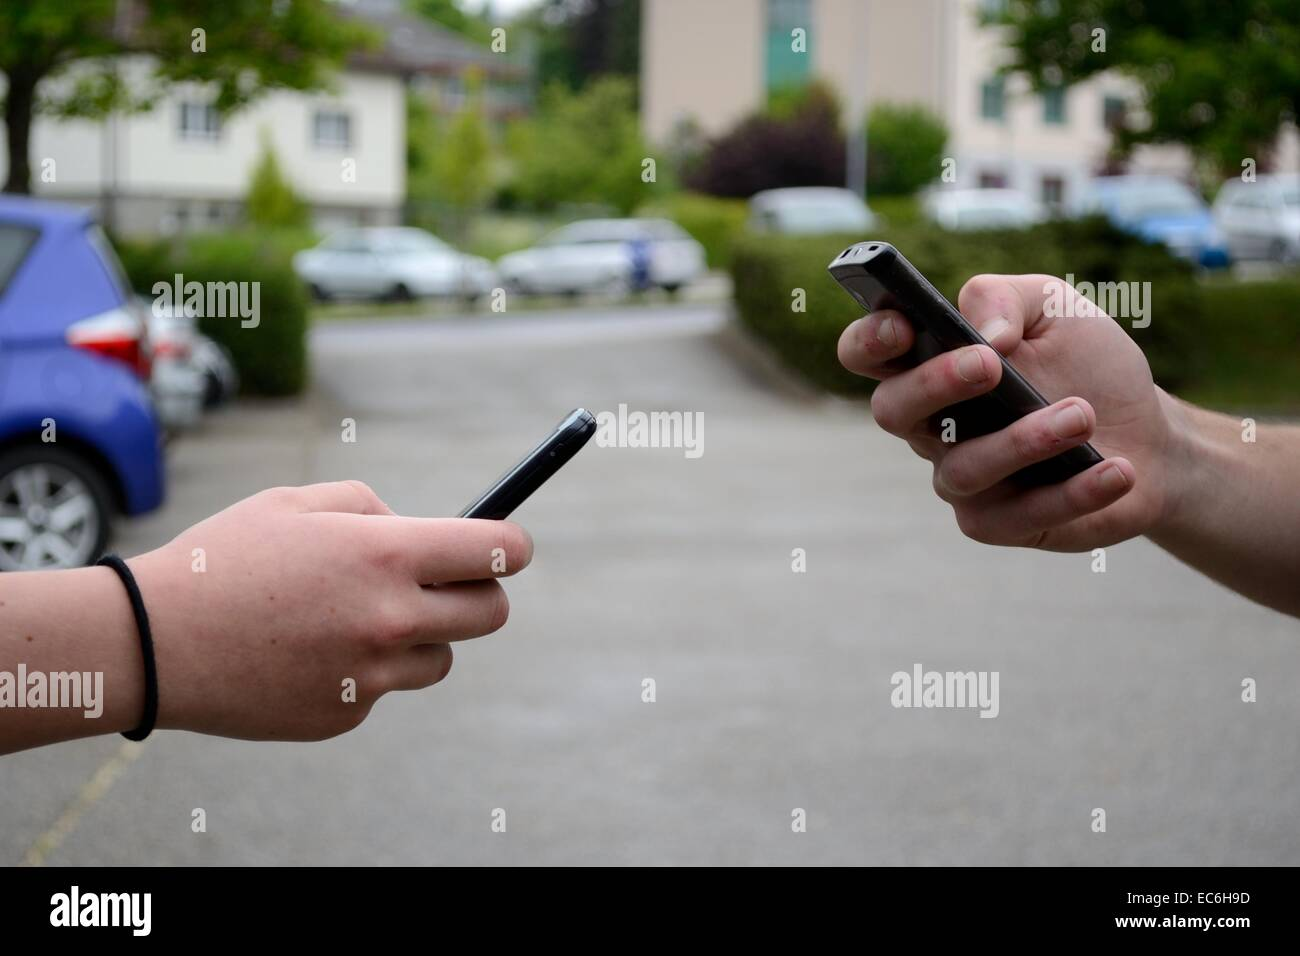 Two people communicate with the mobile phone - Stock Image